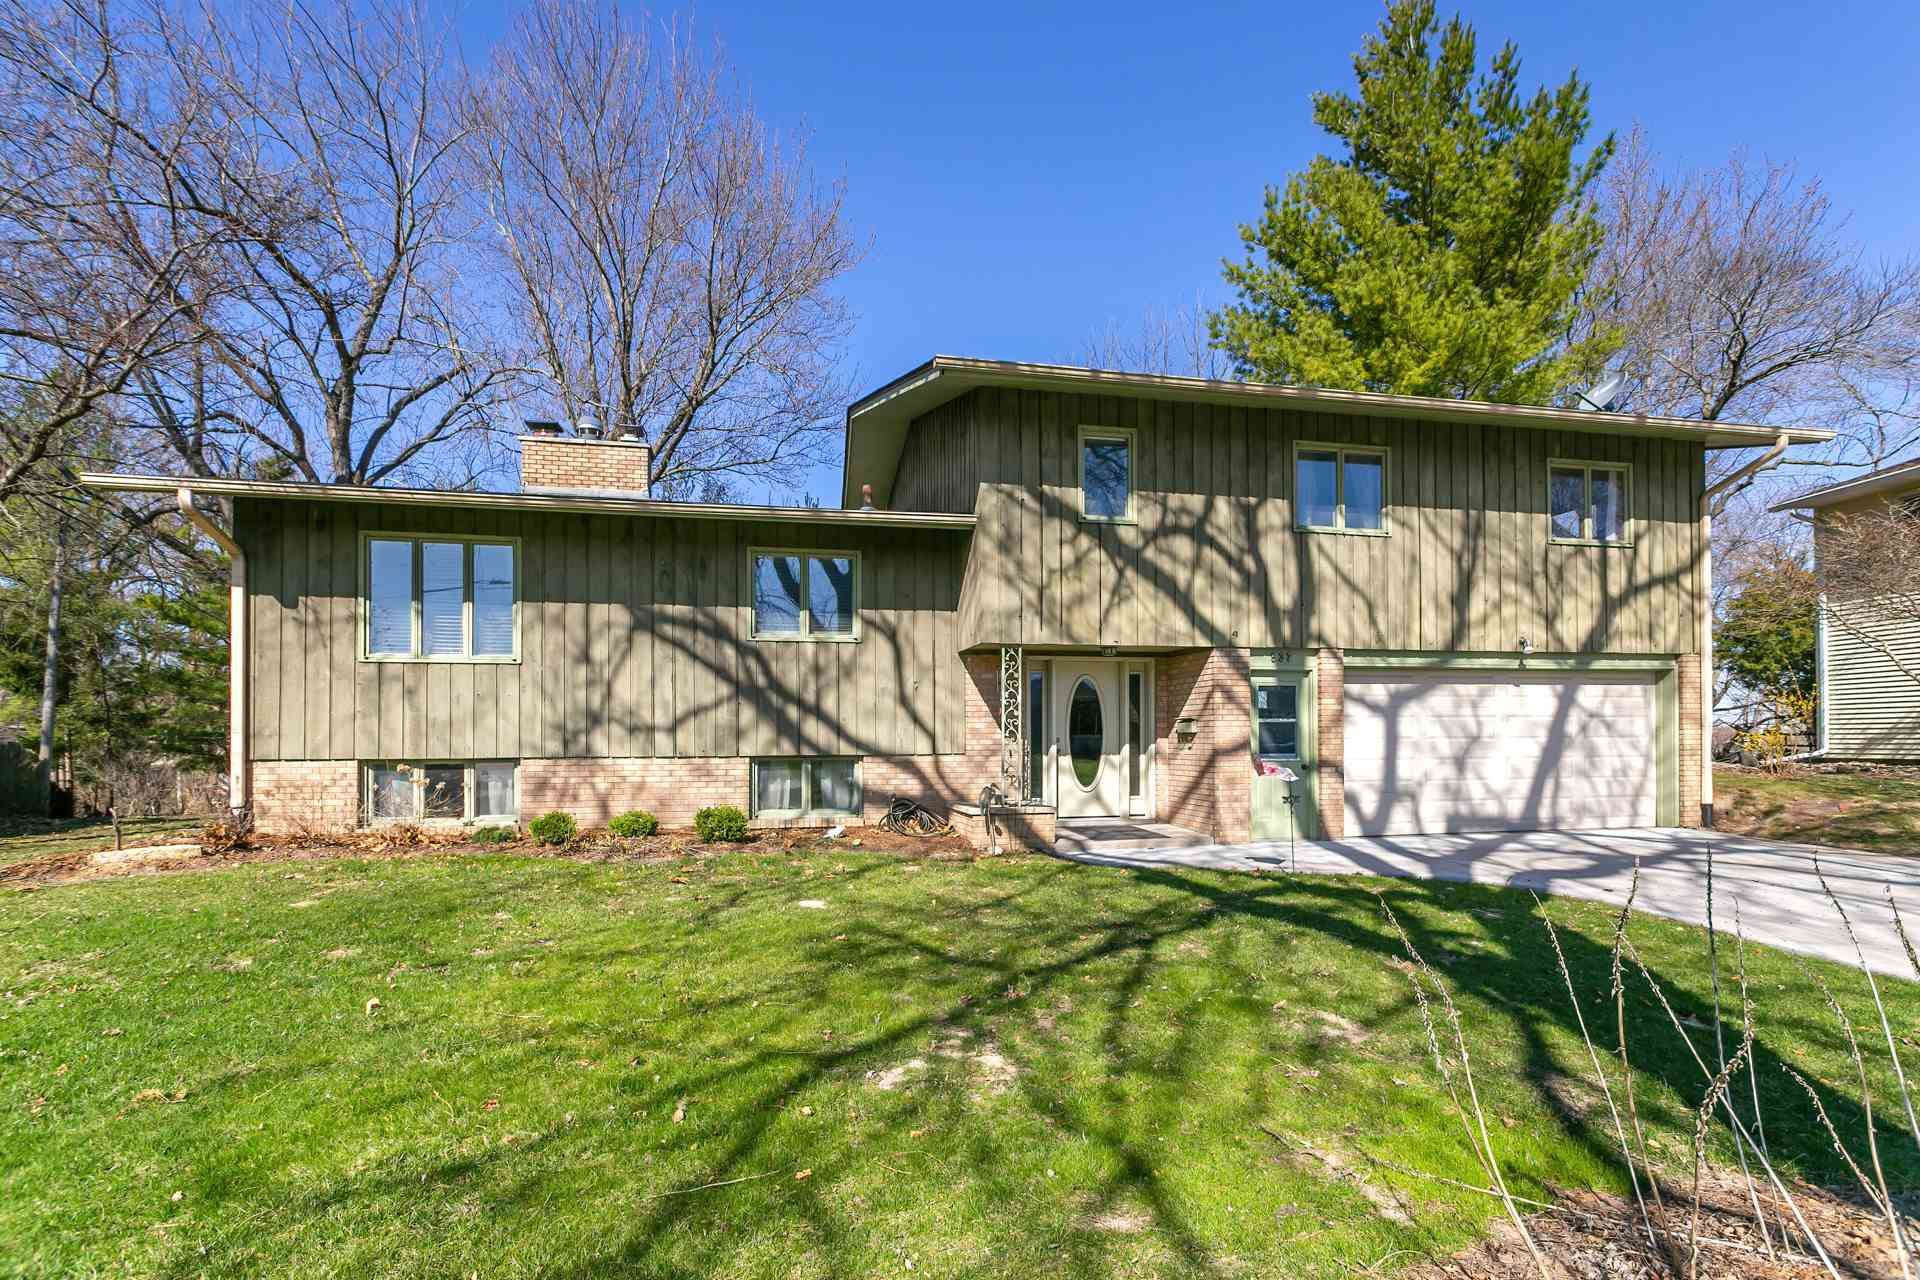 537 12TH Property Photo - Milan, IL real estate listing